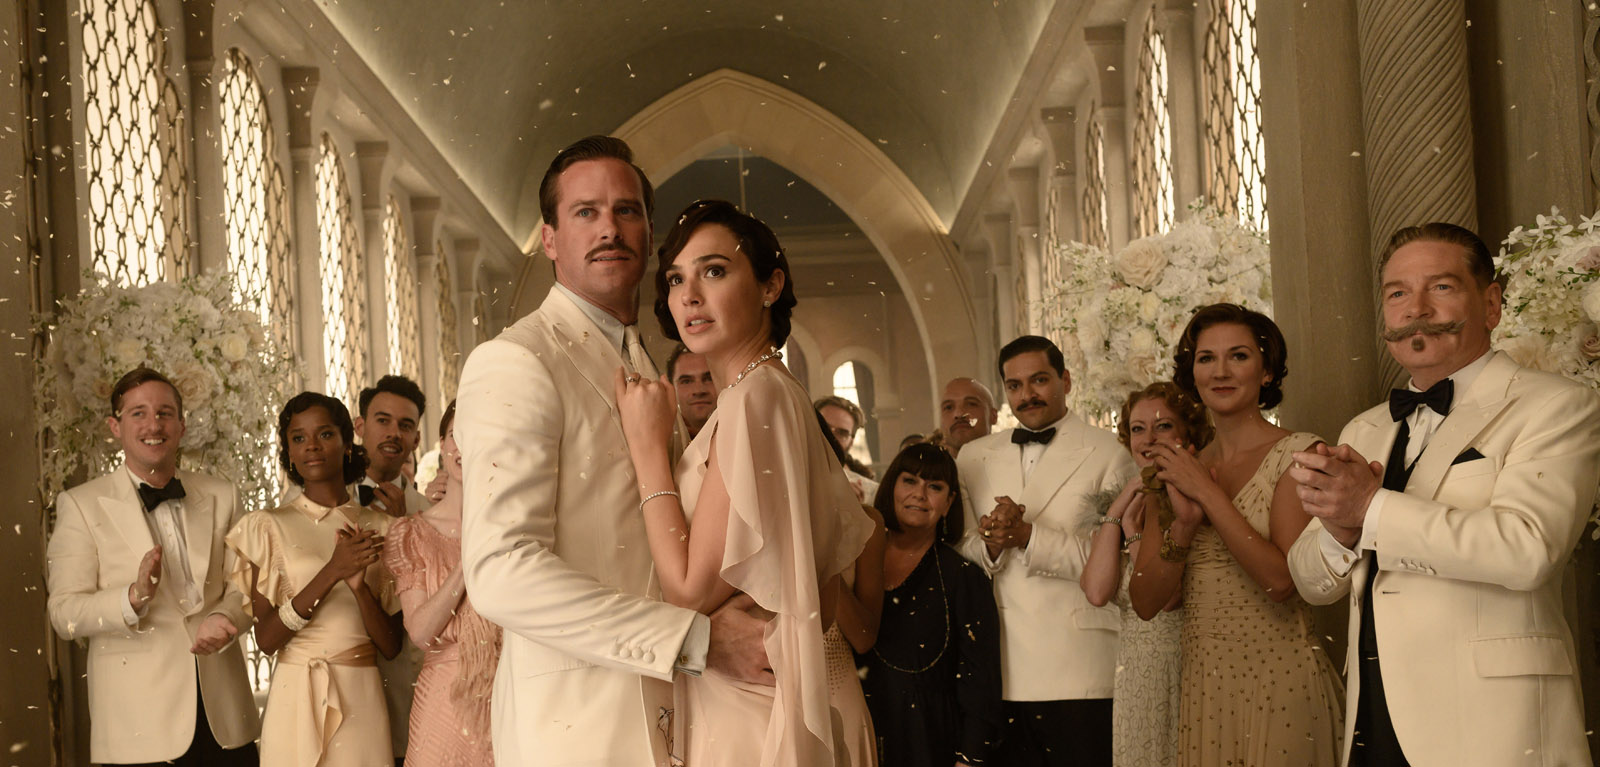 """In director Kenneth Branagh's mystery-thriller """"Death on the Nile"""" based on the 1937 novel by Agatha Christie, Simon Doyle (ARMIE HAMMER) and Linnet Ridgeway (GAL GADOT) are a picture-perfect couple on a honeymoon voyage down the Nile River which is tragically cut short. Wedding guests aboard the glamorous river steamer in this daring tale about the emotional chaos and deadly consequences triggered by obsessive love include Belgian sleuth Hercule Poirot (KENNETH BRANAGH) and an all-star cast of suspects. Twentieth Century Studios' """"Death on the Nile"""" opens in U.S. theaters October 23, 2020. Photo by Rob Youngson. © 2020 Twentieth Century Fox Film Corporation. All Rights Reserved."""